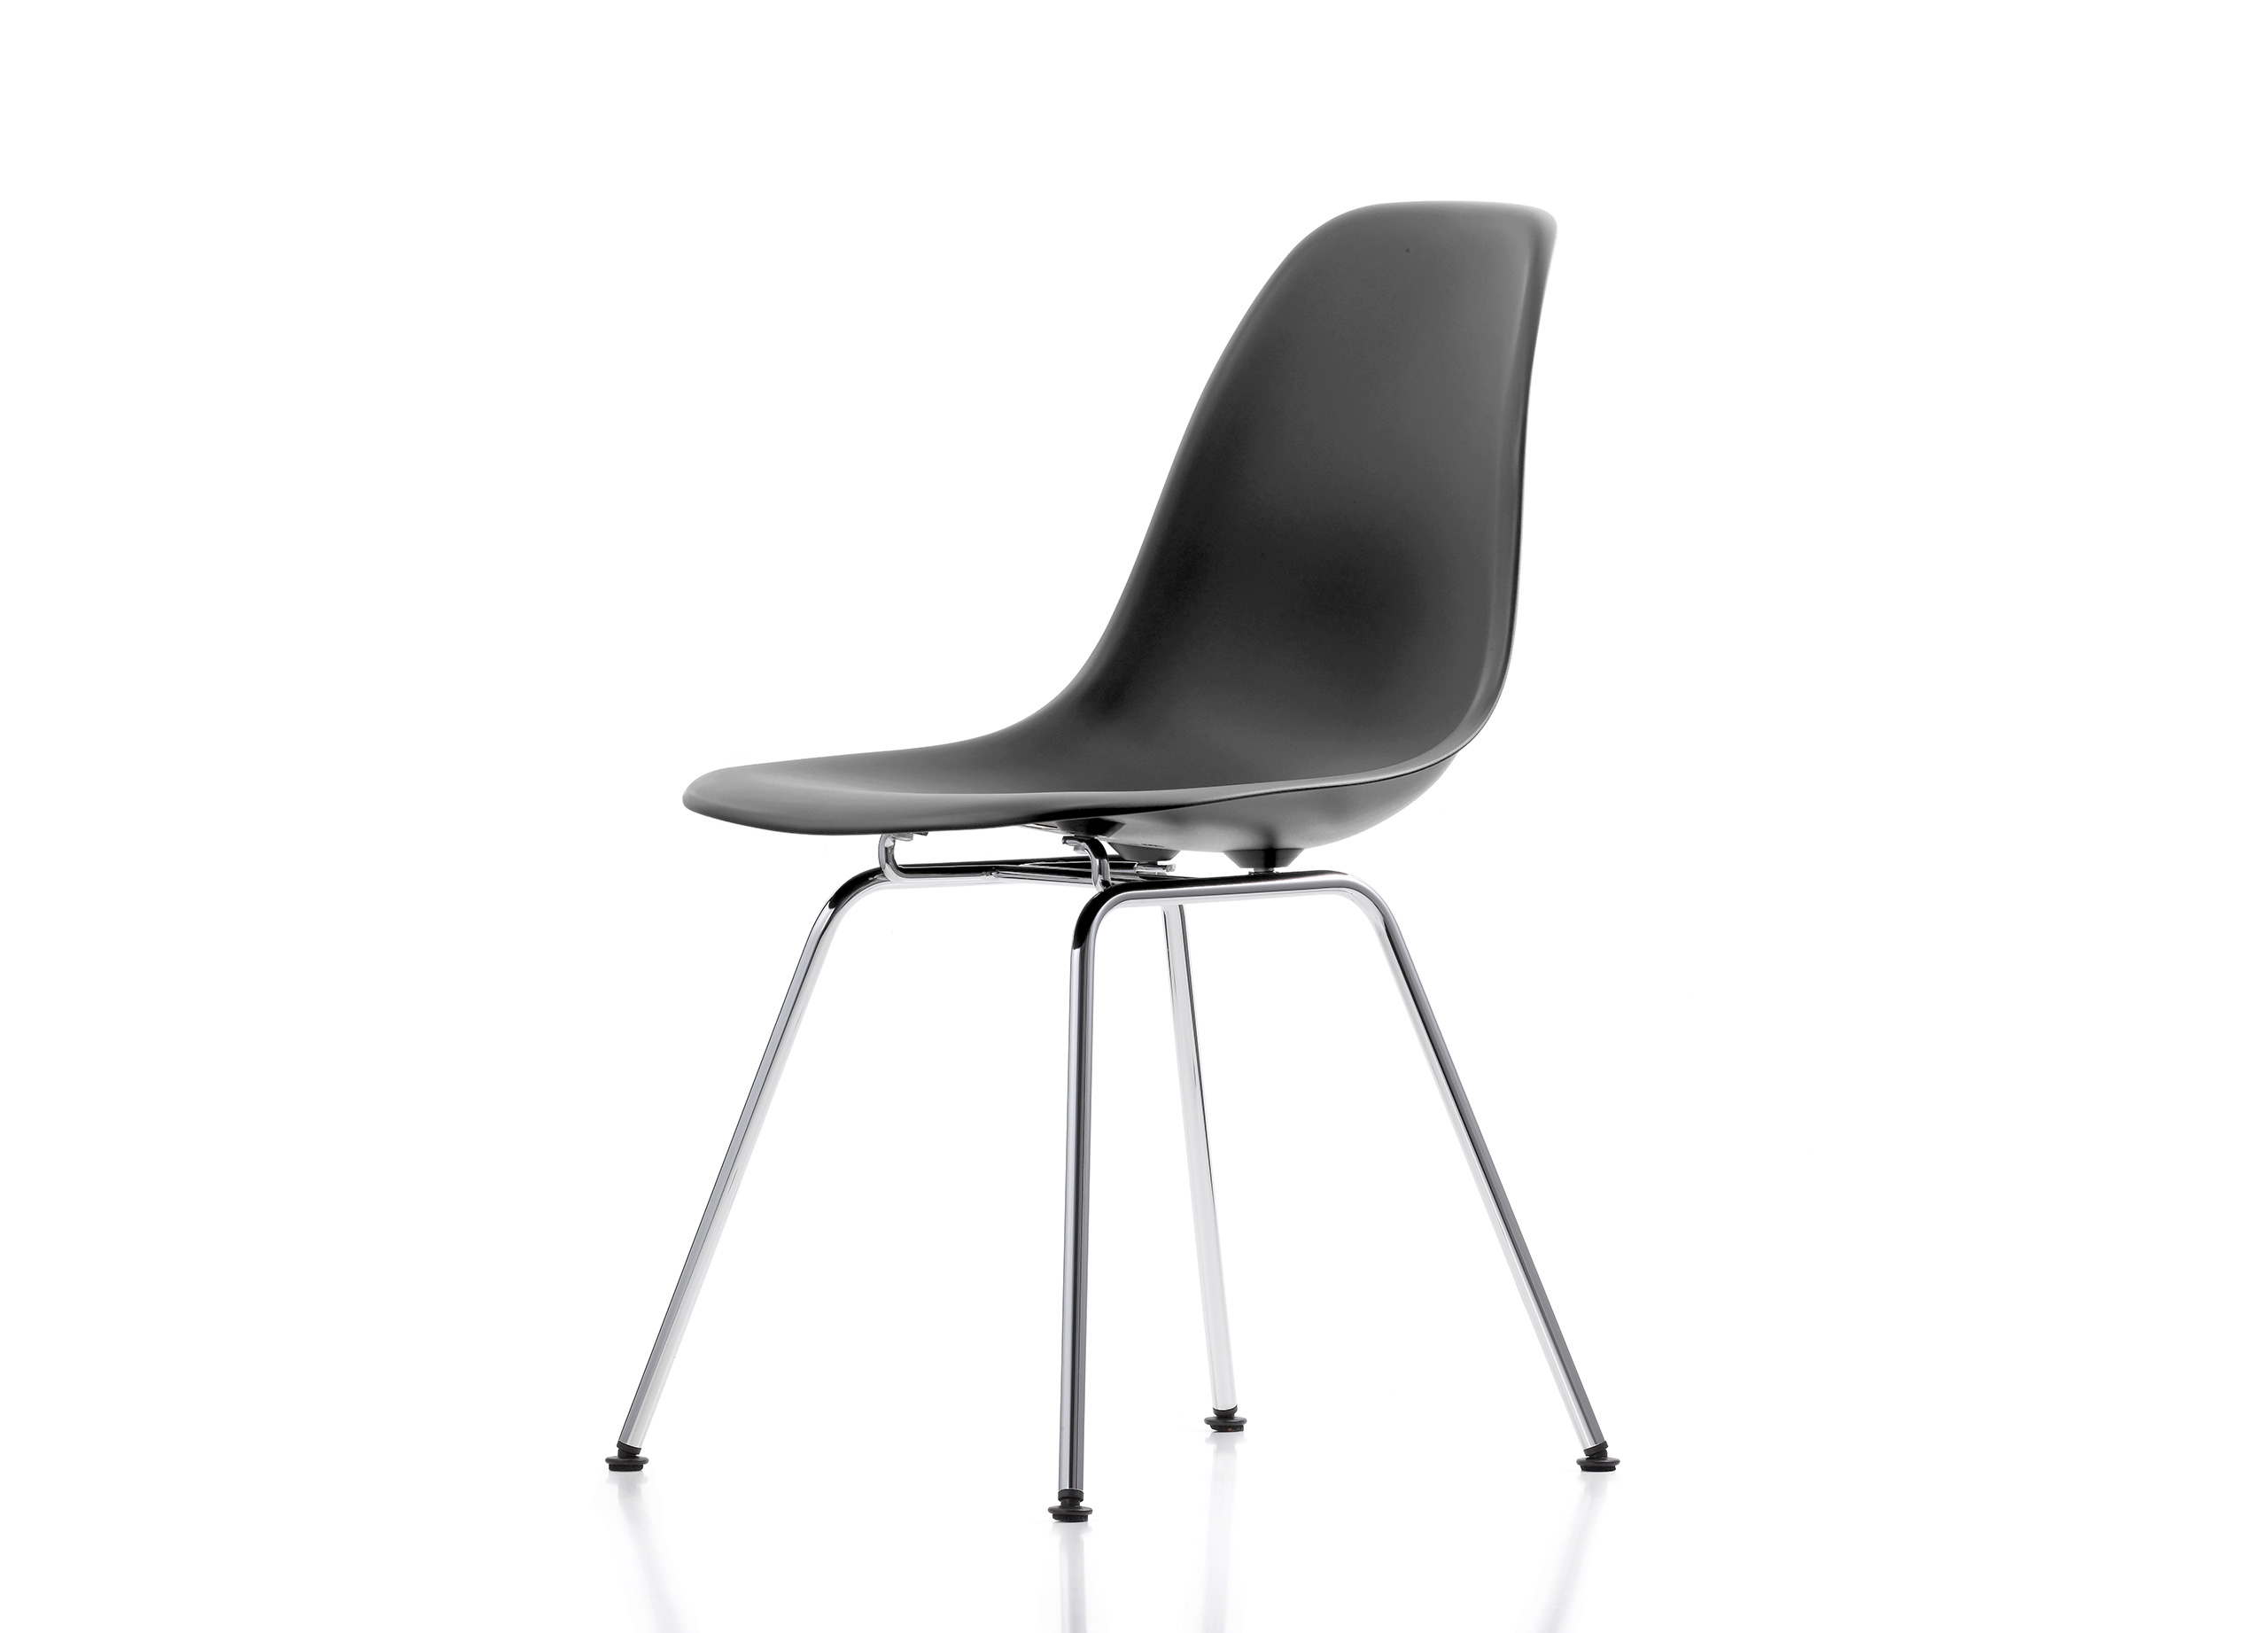 Vitra dsx eames plastic side chair the qvest shop for Vitra leuchten